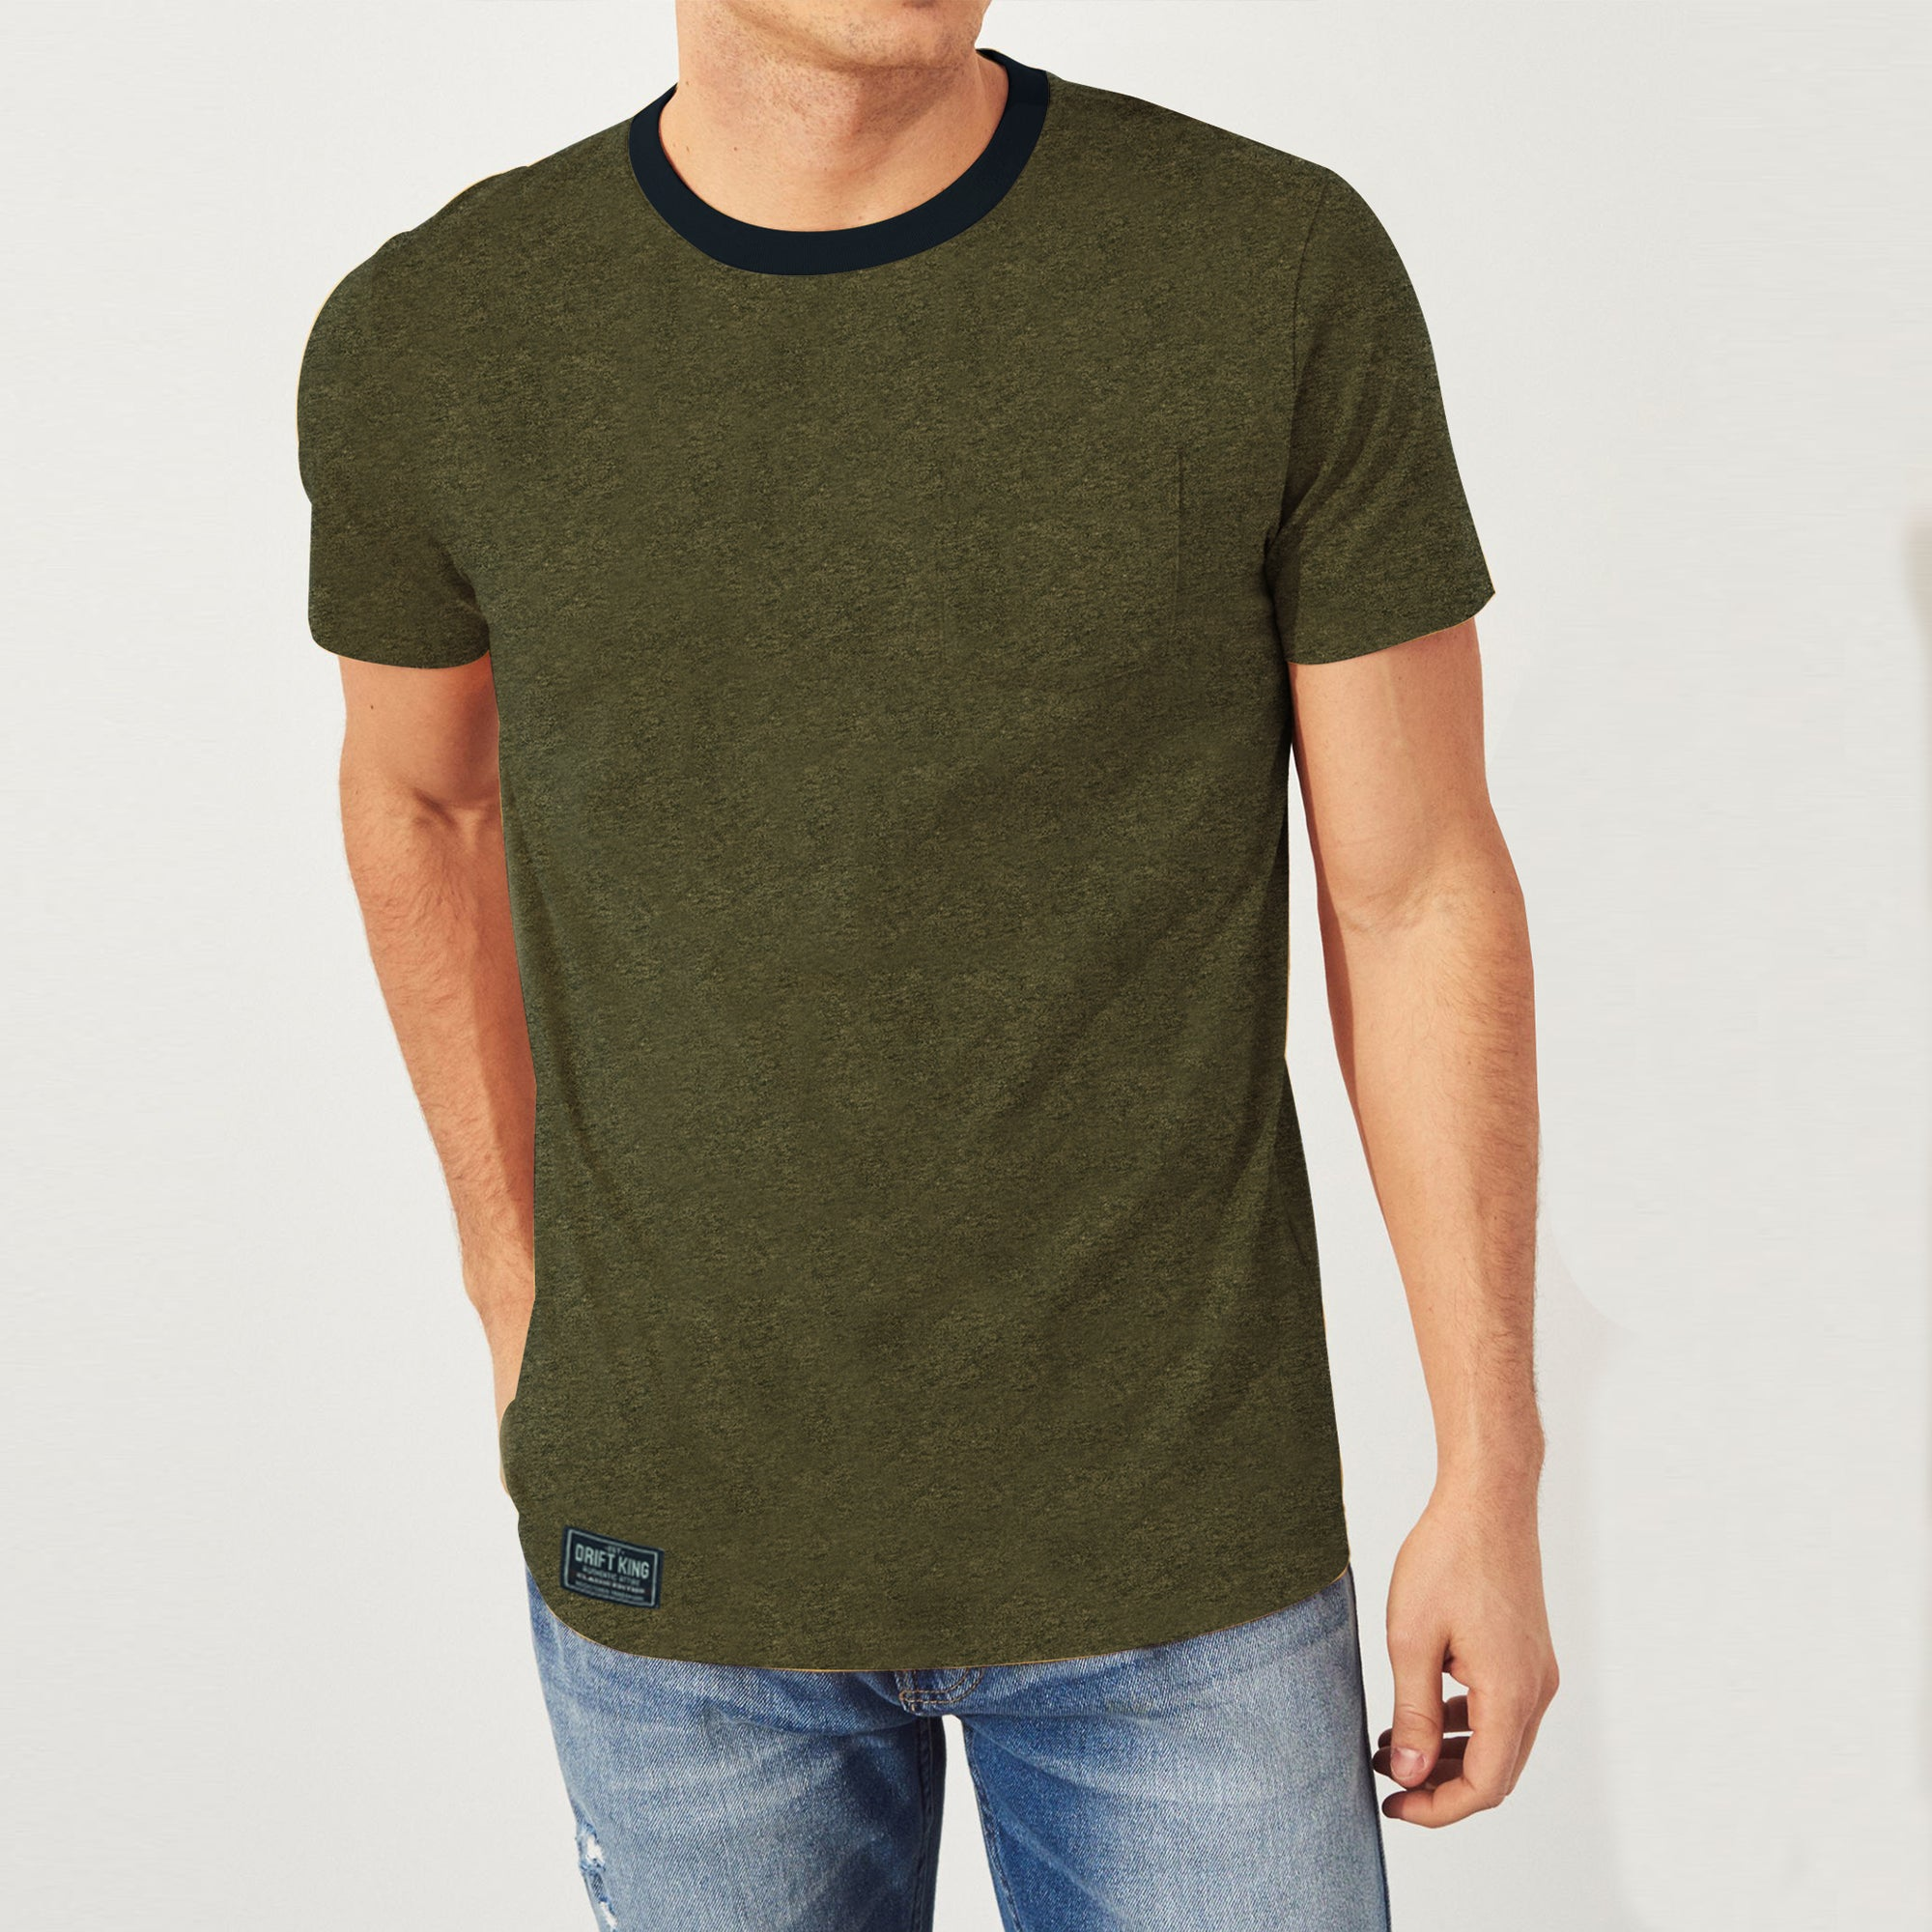 Drift King Crew Neck Single Jersey Tee Shirt For Men-Olive Melange-BE8336